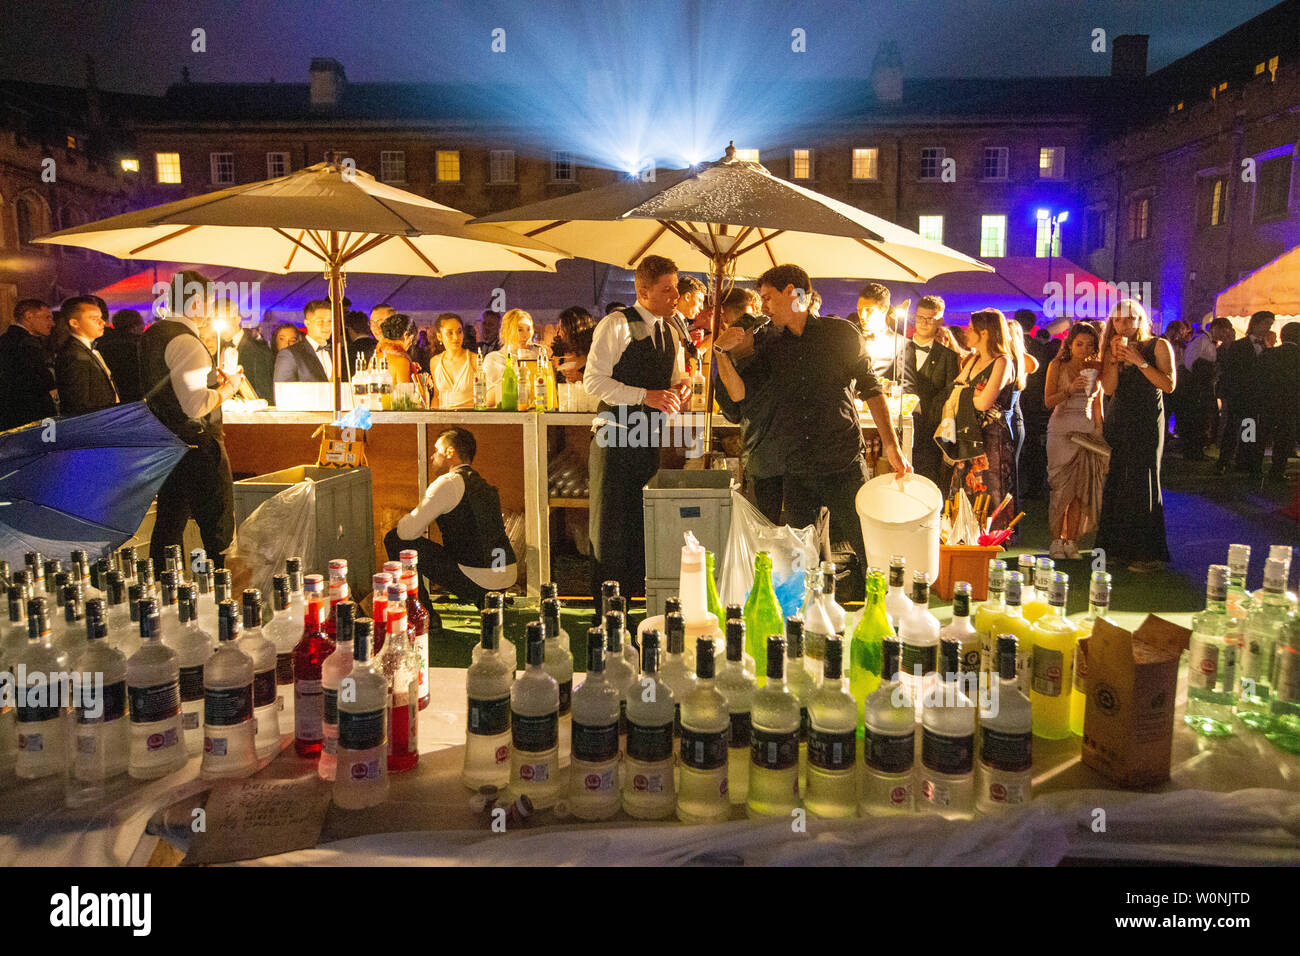 Picture dated June 18/19th shows drinks and a bar at the St Johns' May Ball in Cambridge.  Pictures offer a rare glimpse inside the lavish St Johns' May Ball, now the highlight of the social calendar at Cambridge University and headlined by Pixie Lott this year.  Students braved the rain to step out in black tie and elegant ball gowns for the event which has been voted 'Seventh Best Party in the World' by Time Magazine.  Every year there is a scramble to get tickets for the spectacular end-of-year party, which costs £365 for a pair.  The theme of the event is always a closely guarded secret un - Stock Image